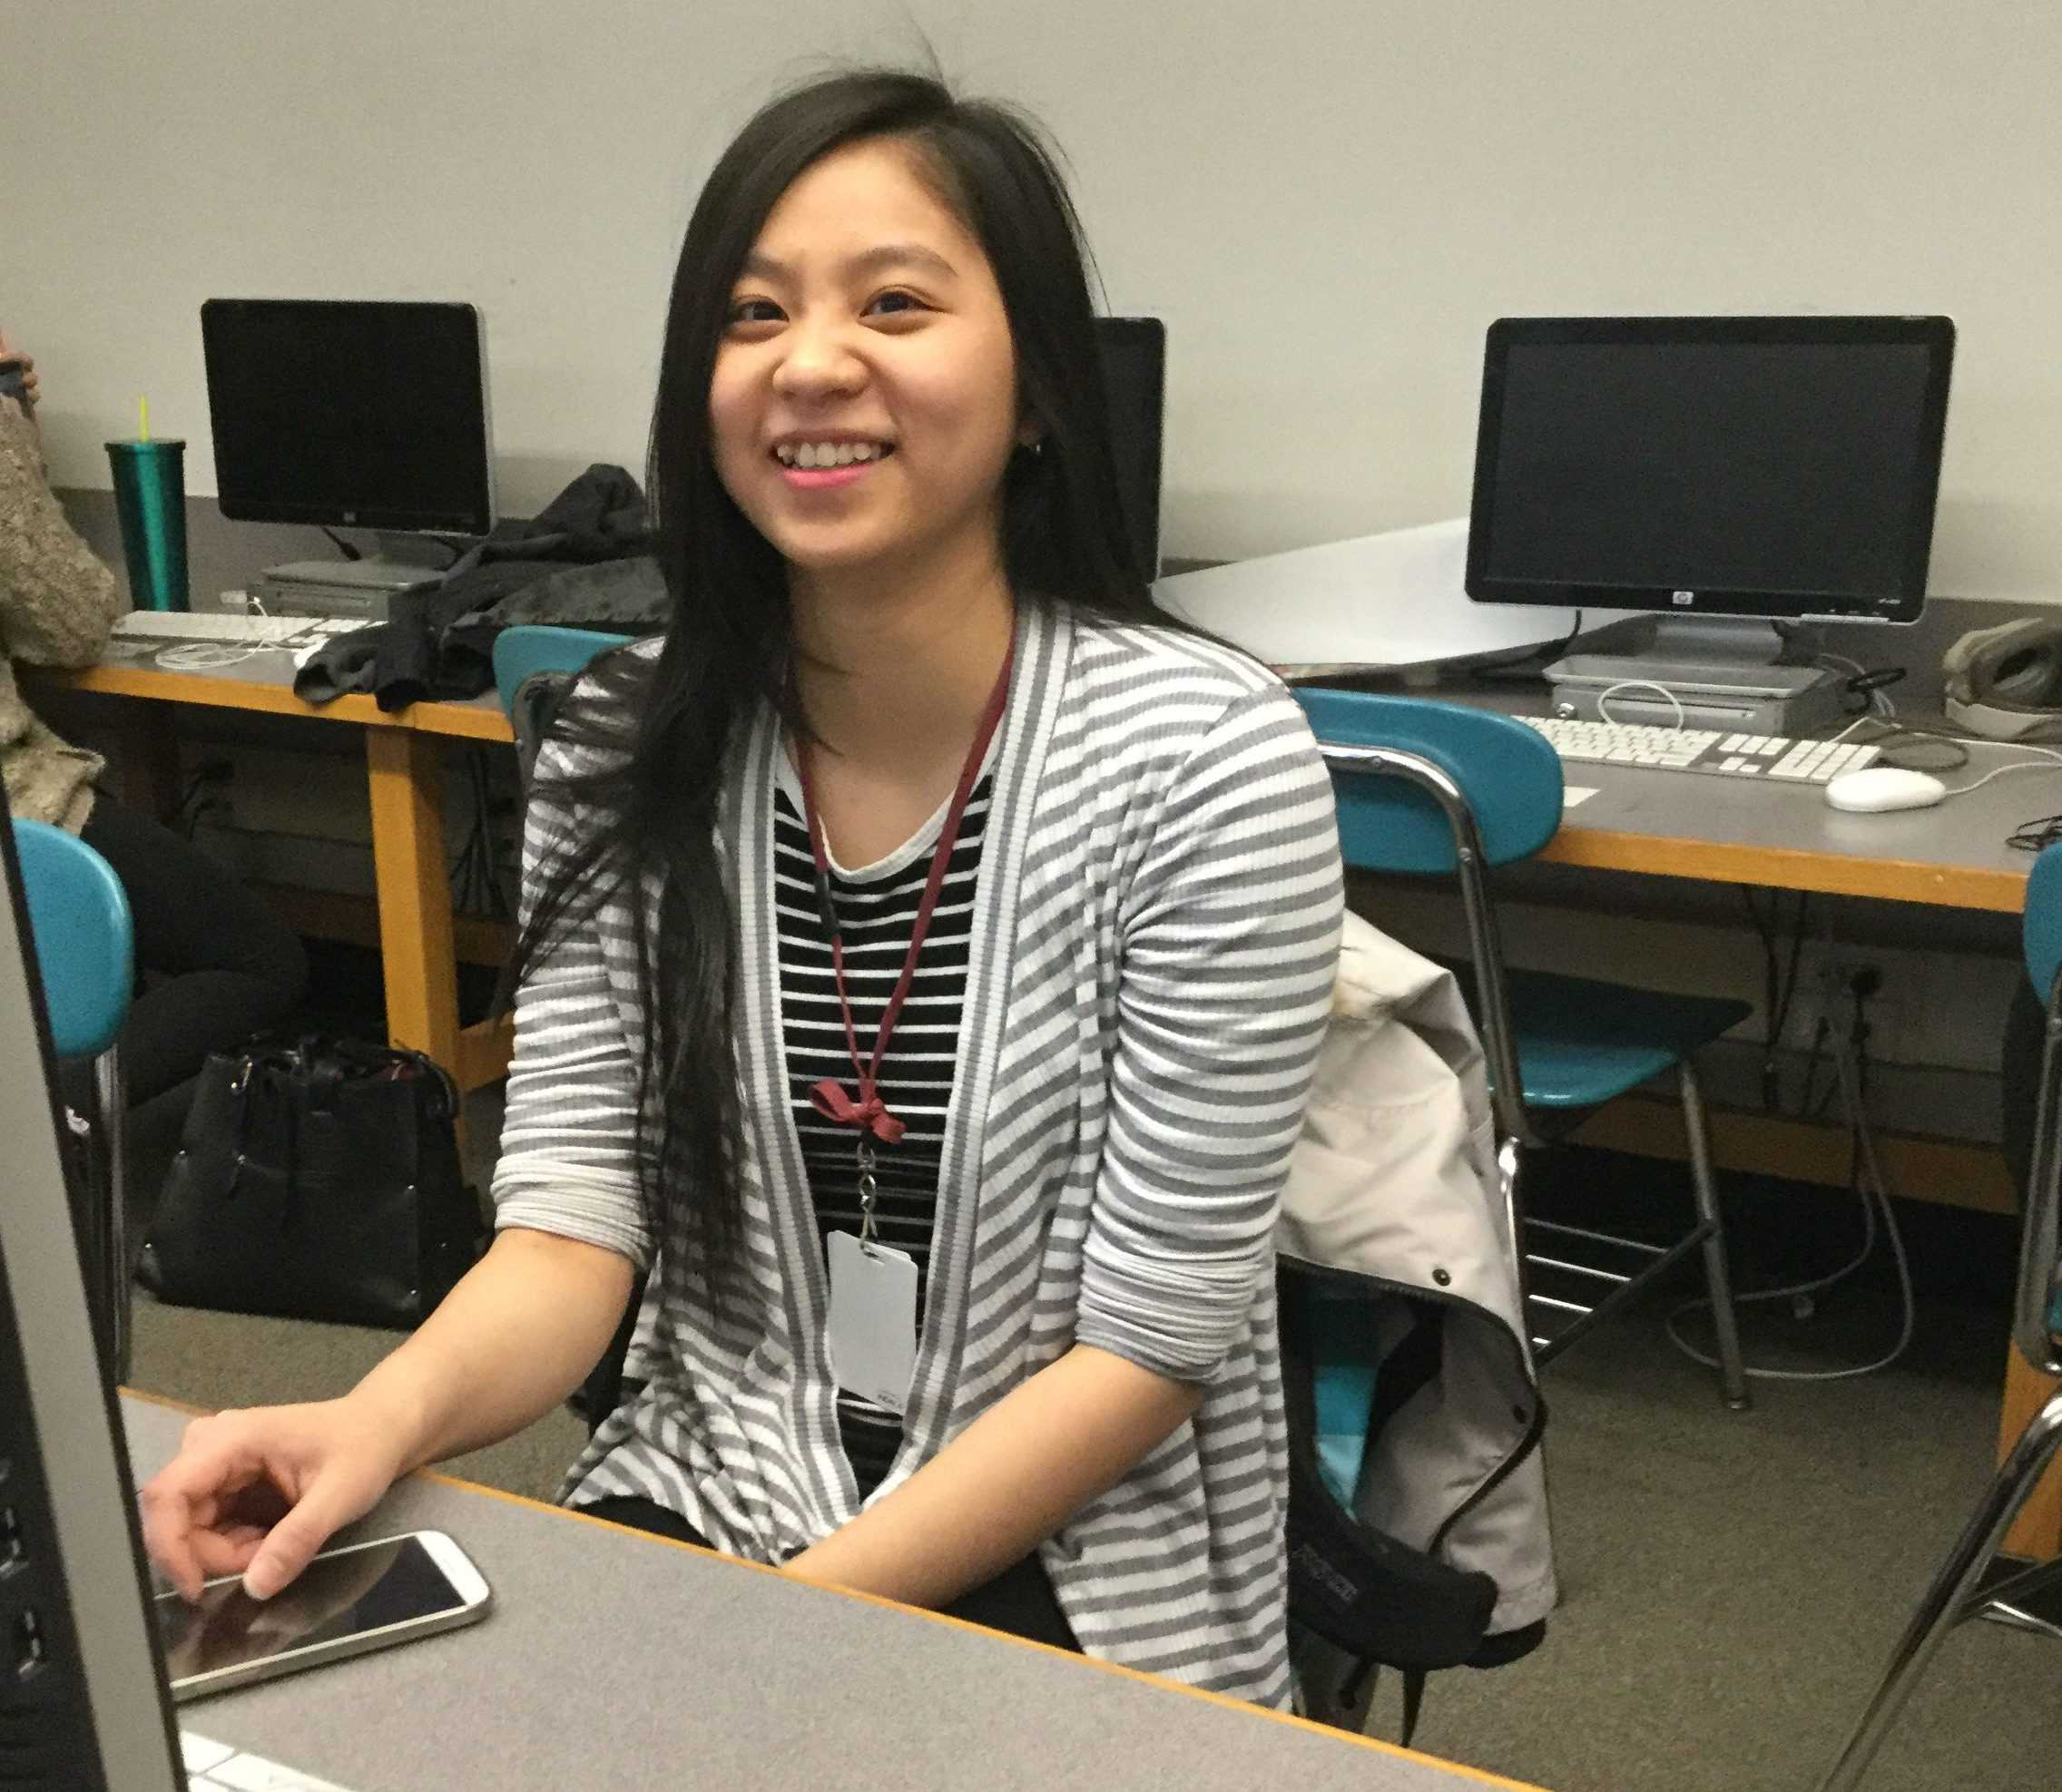 Phie Nguyen studied English and in a matter of years advanced to mainstream courses at LHS.  Courtney Murphy tells her story, listen below.